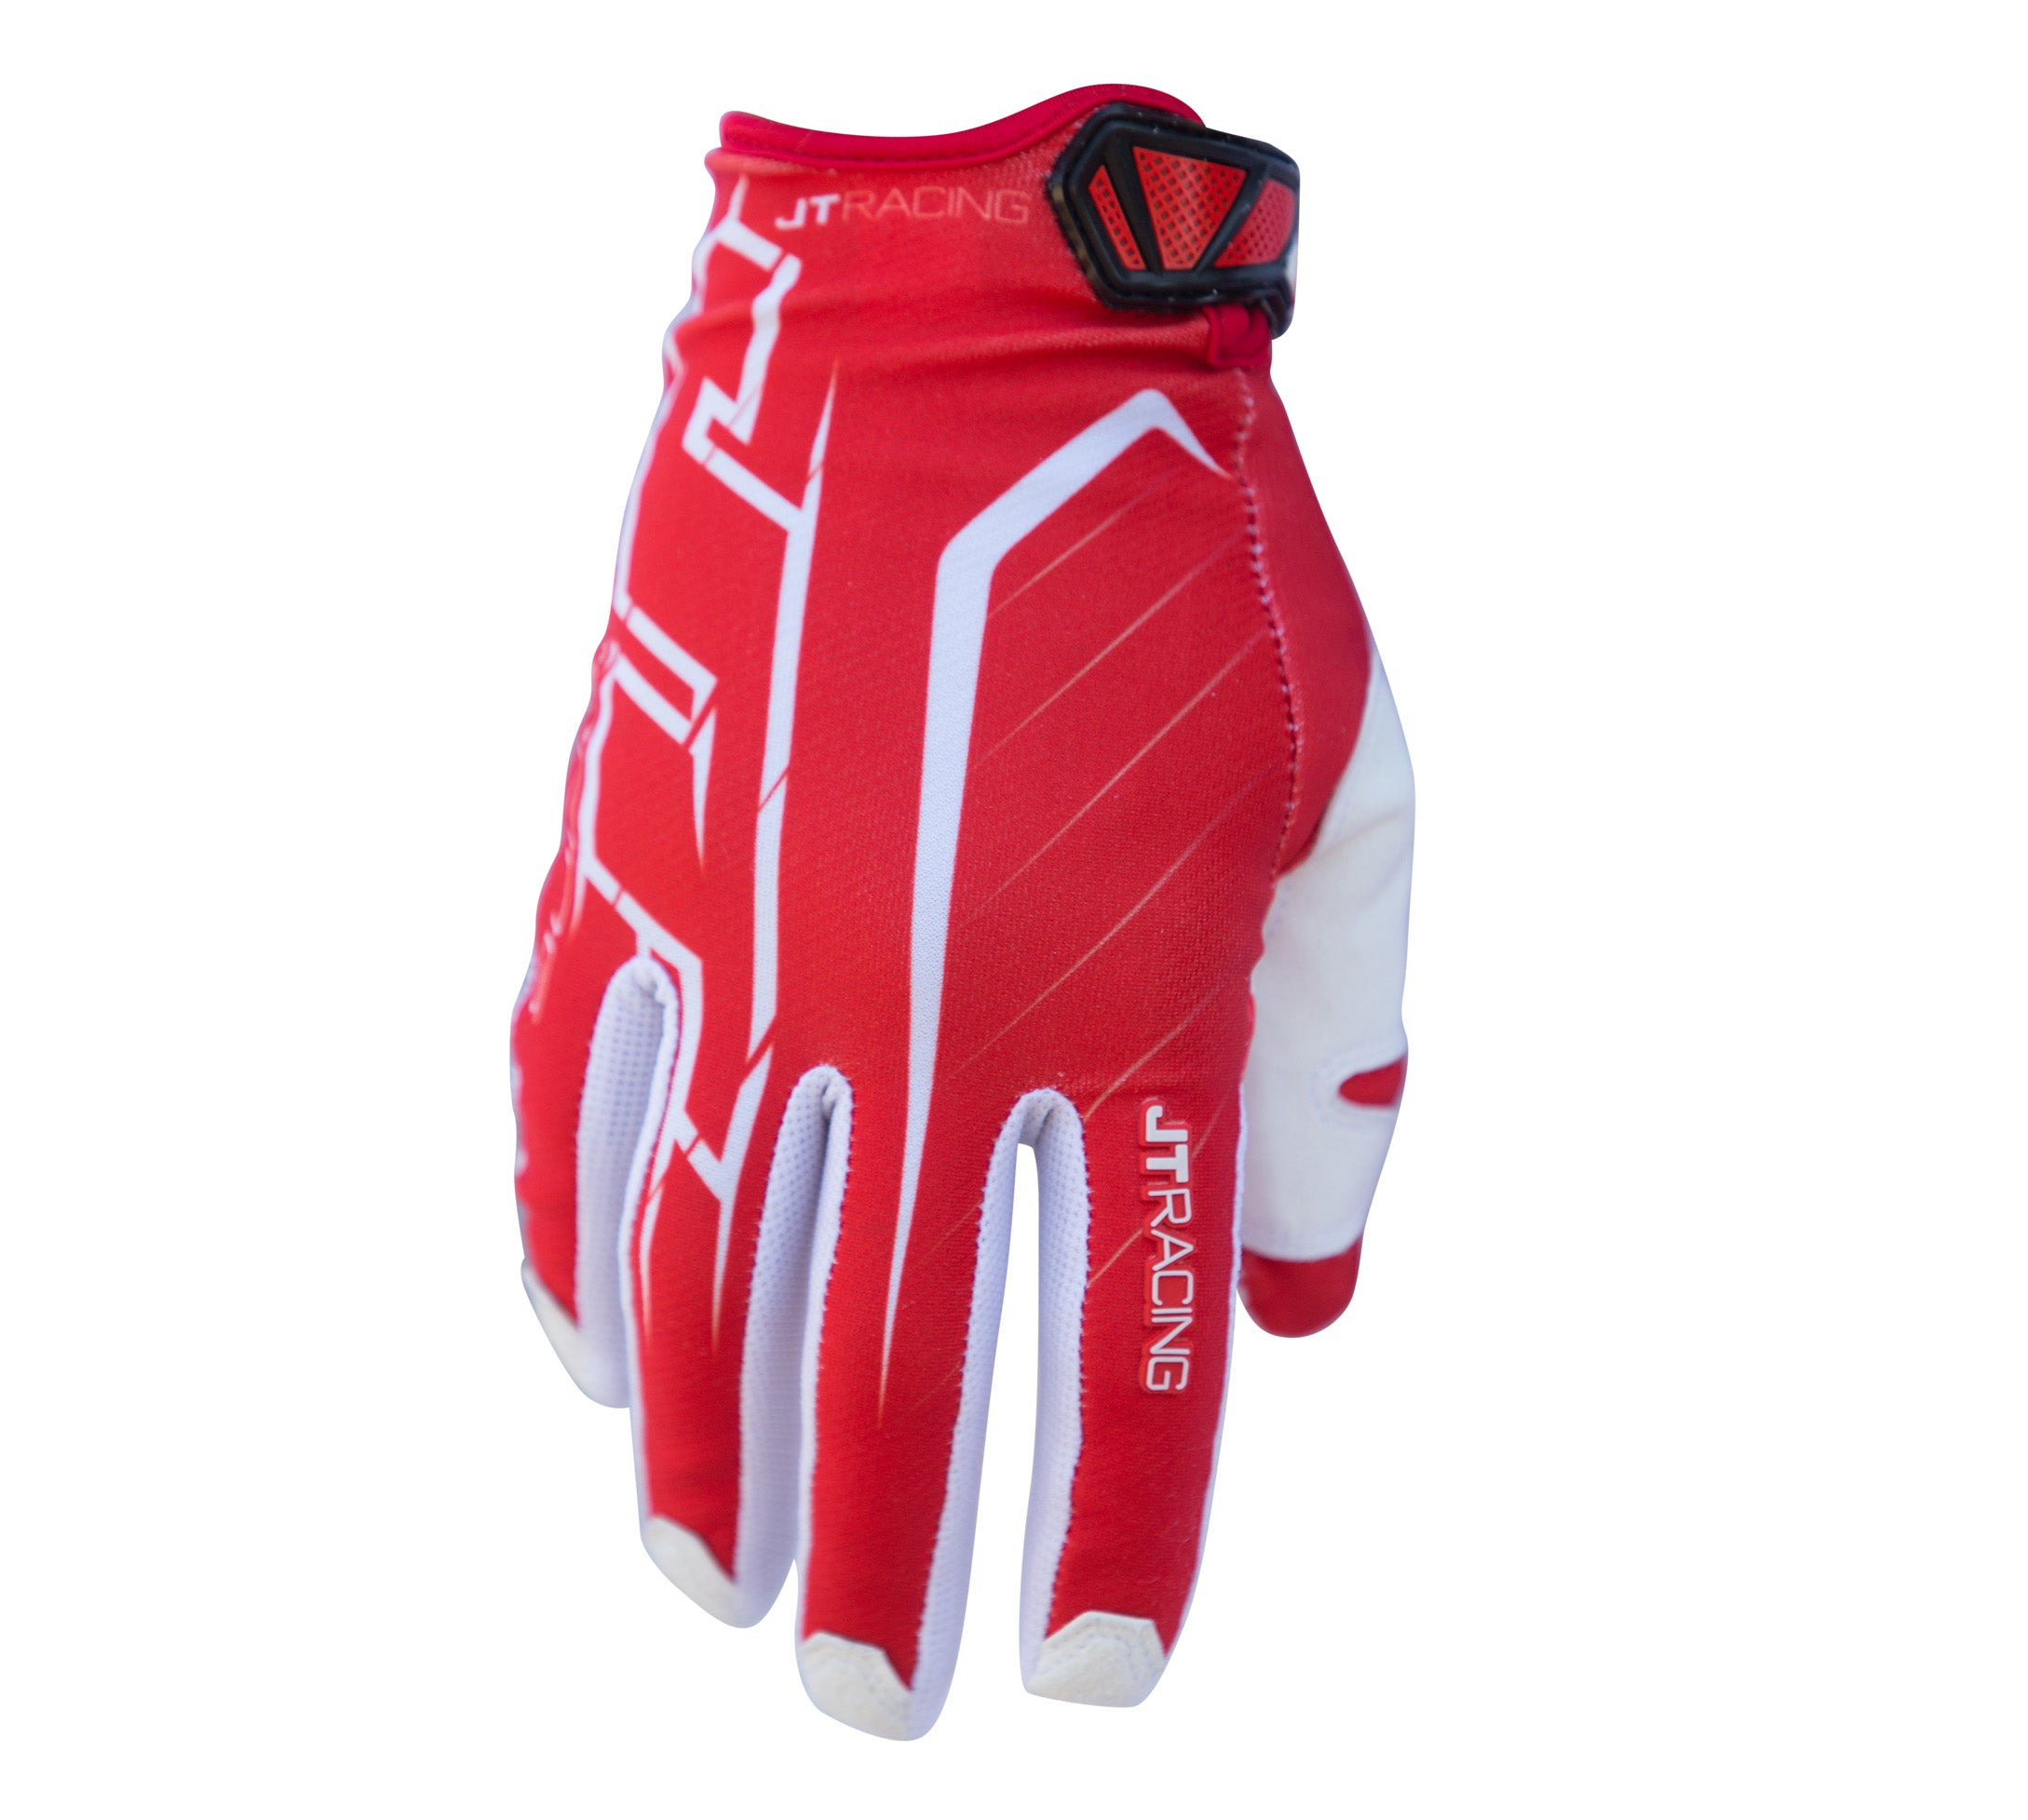 JT Racing USA-Lite Turbo Glove, Red/White